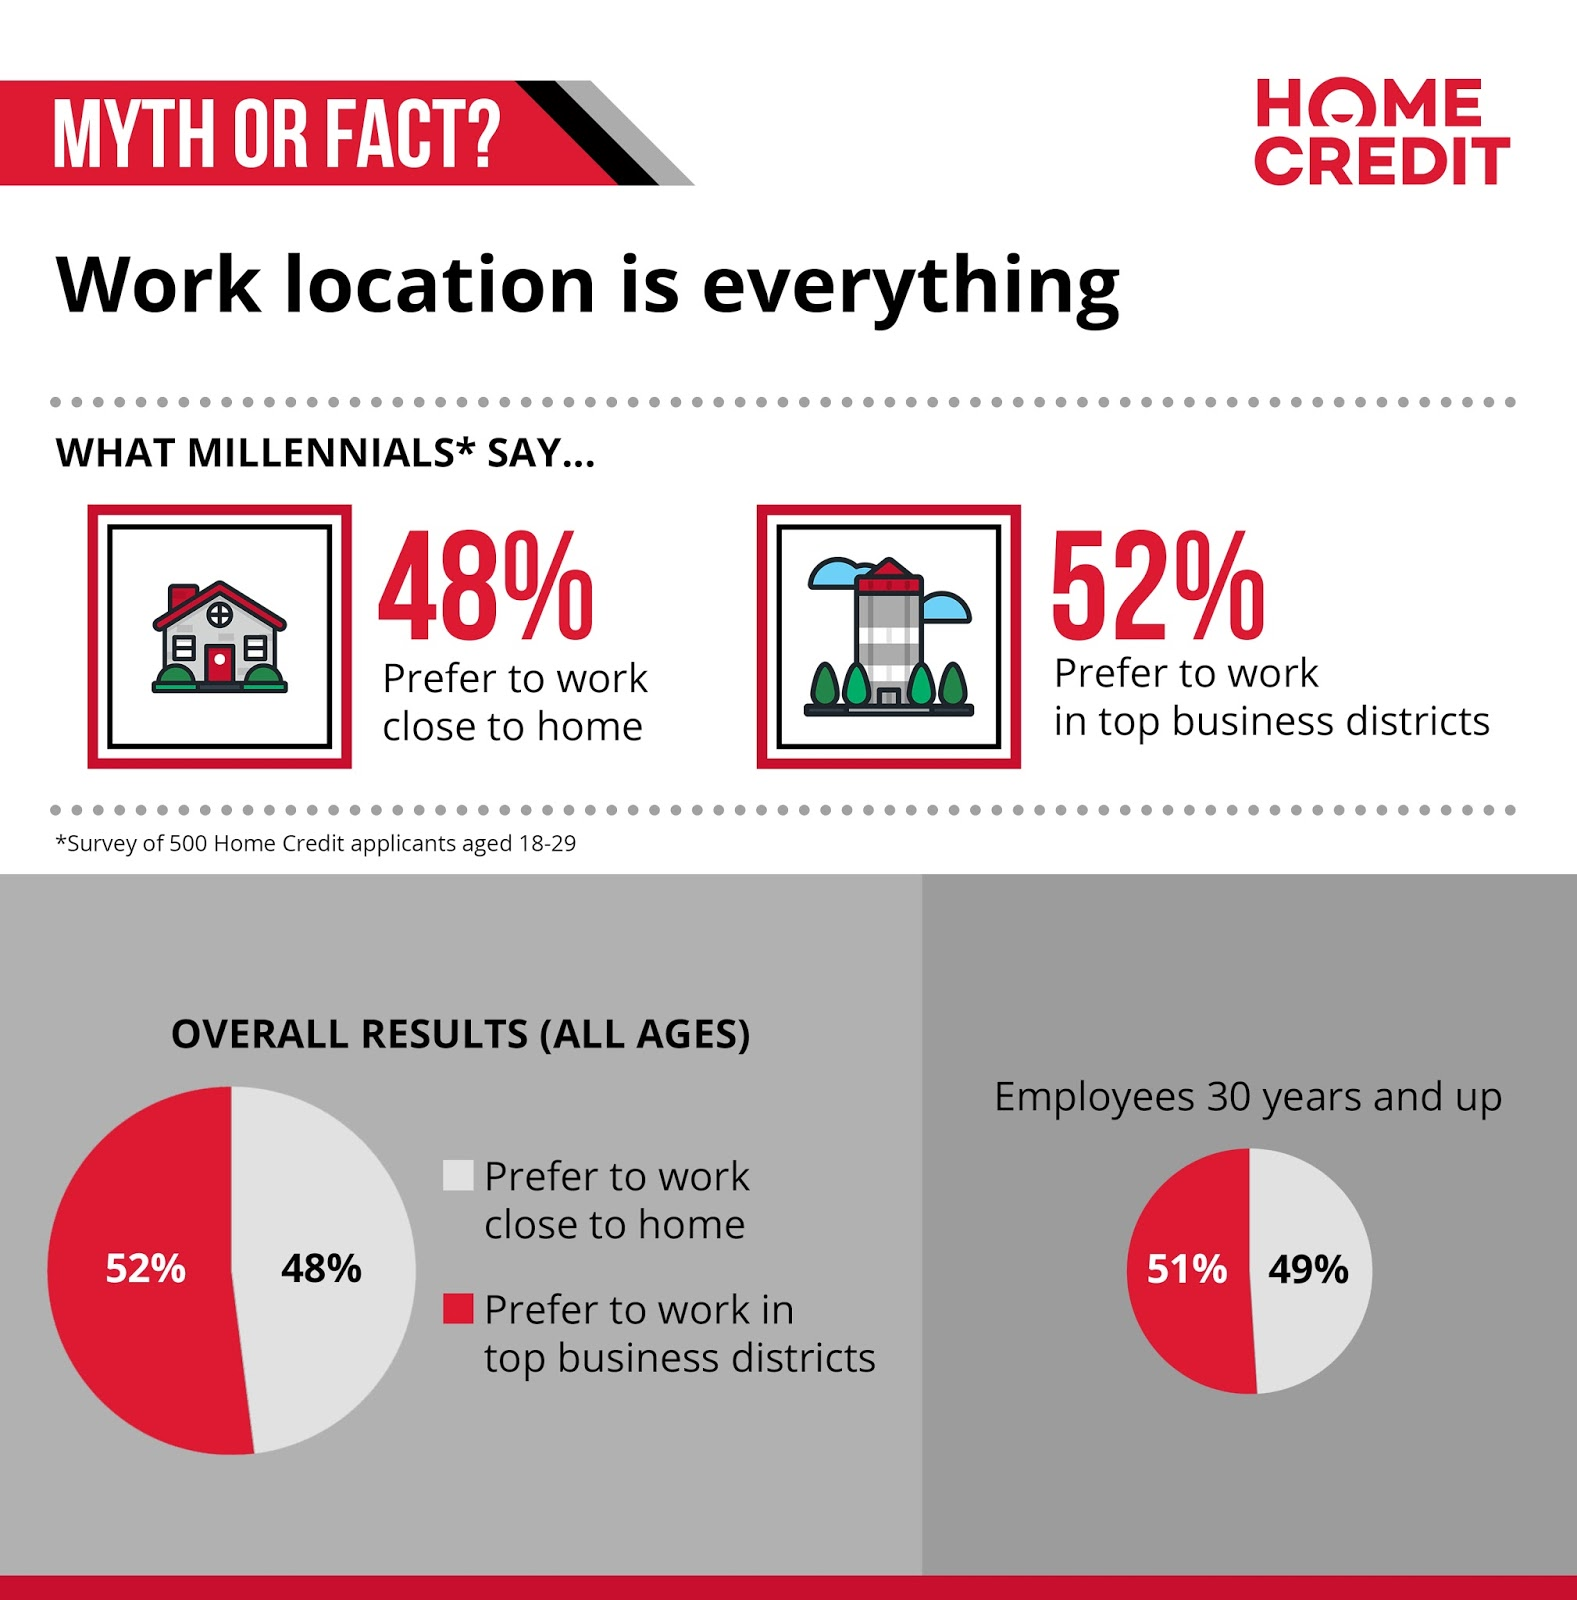 Myth or fact: work location is everything